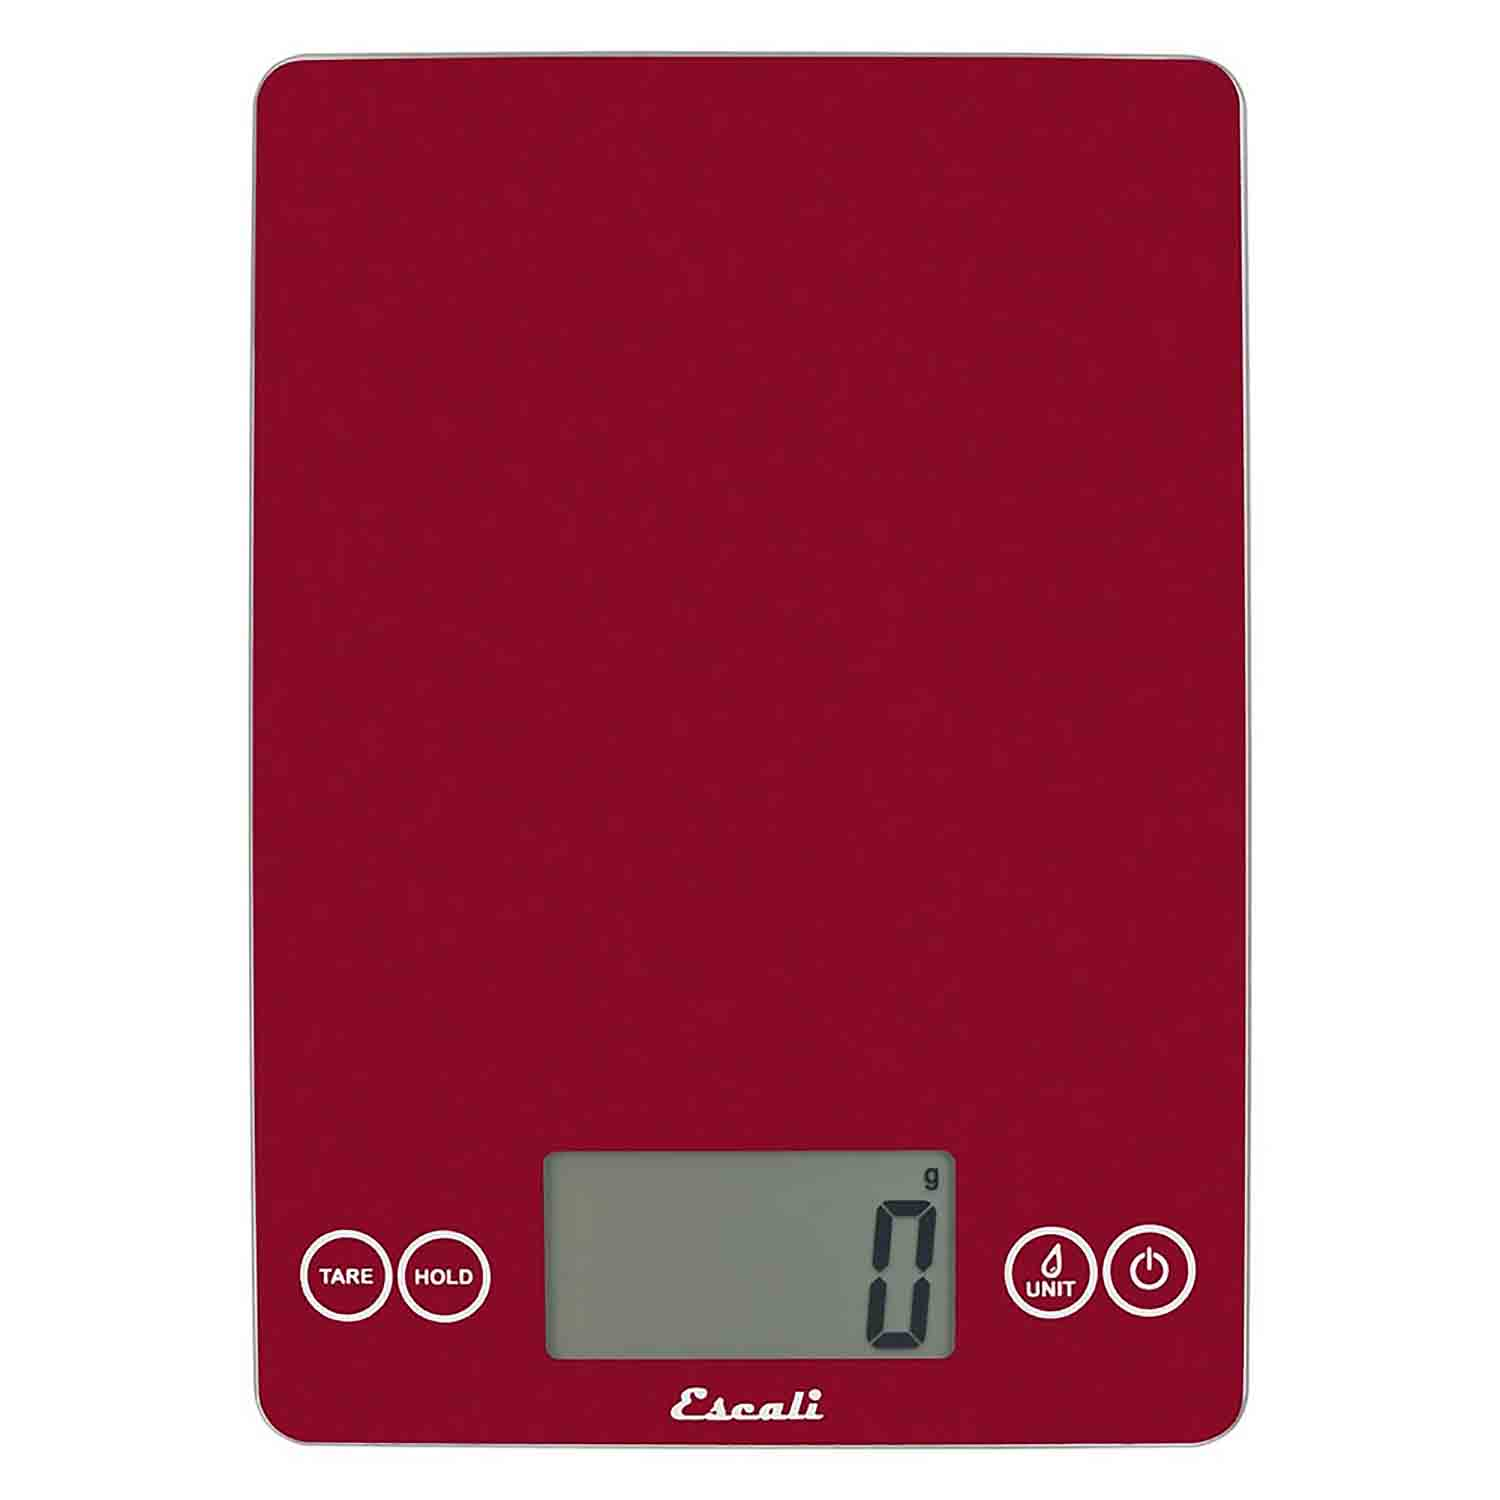 Metallic Red Arti Glass Digital Scale